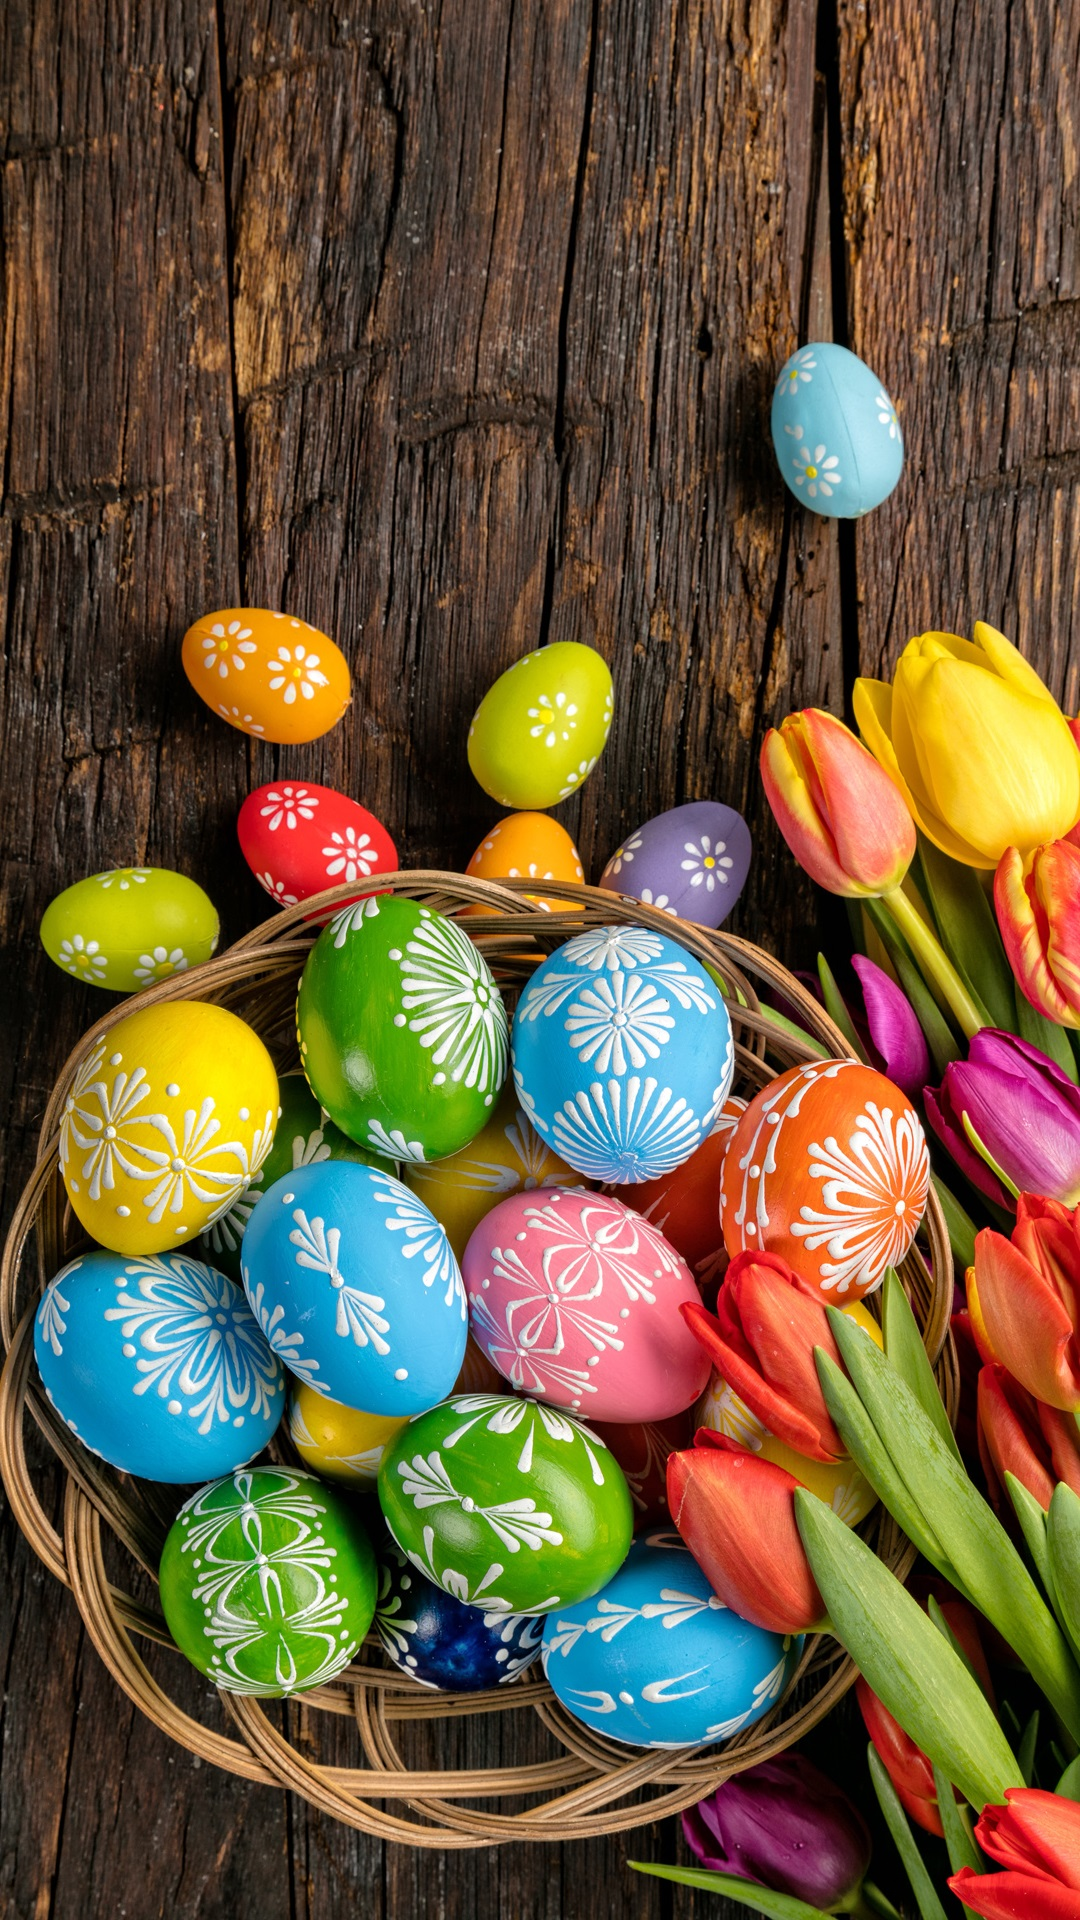 Happy Easter Colorful Eggs Wood Tulips Flowers Spring Iphone X